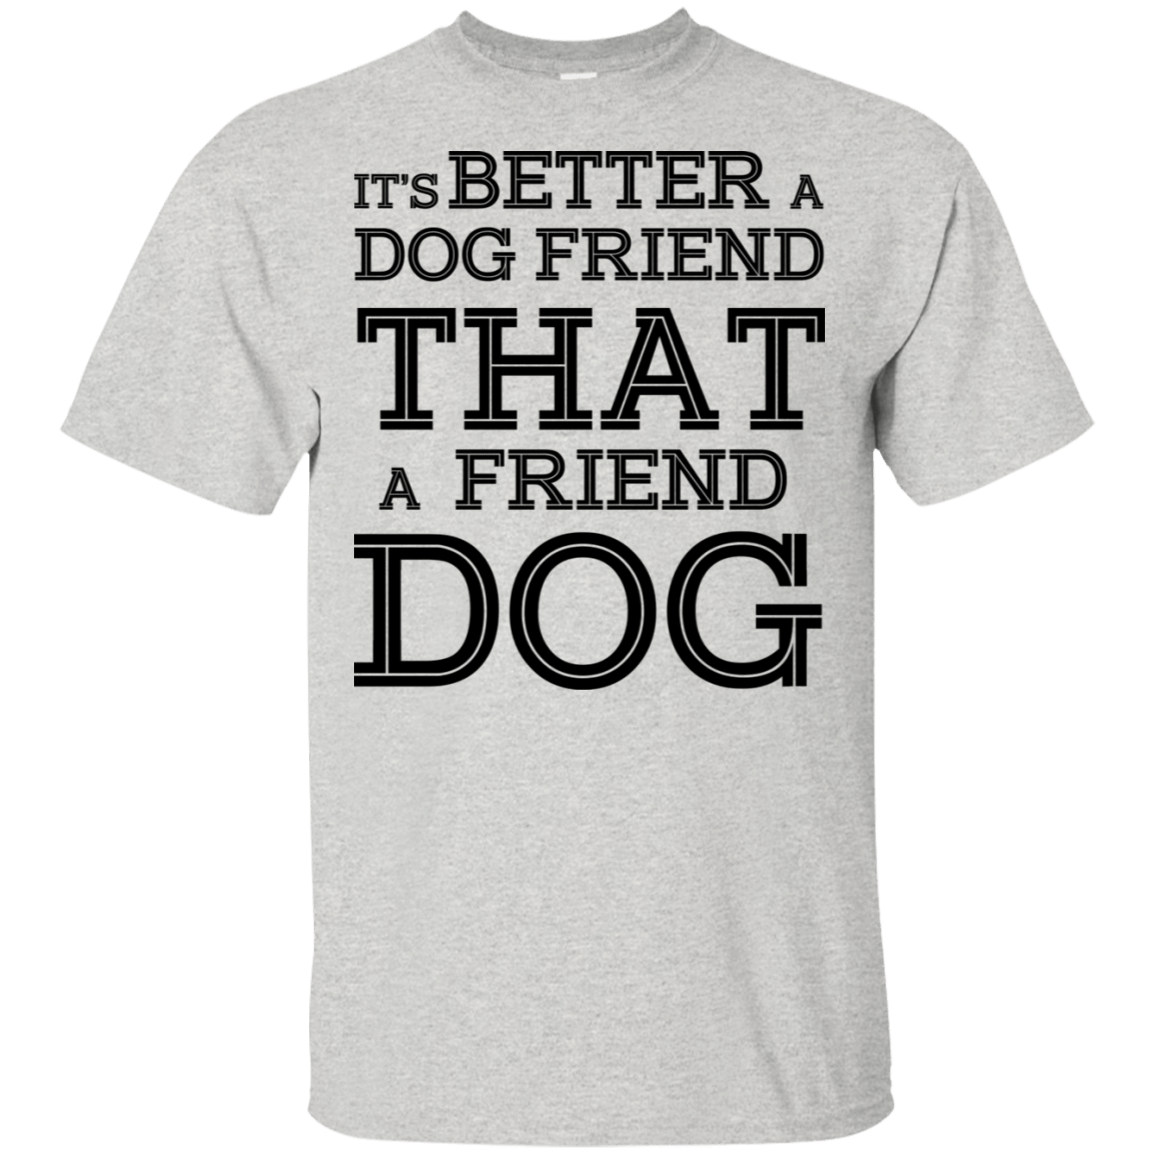 It's Better A Dog Friend That A Friend Dog 22-2475-73564855-12568 - Tee Ript